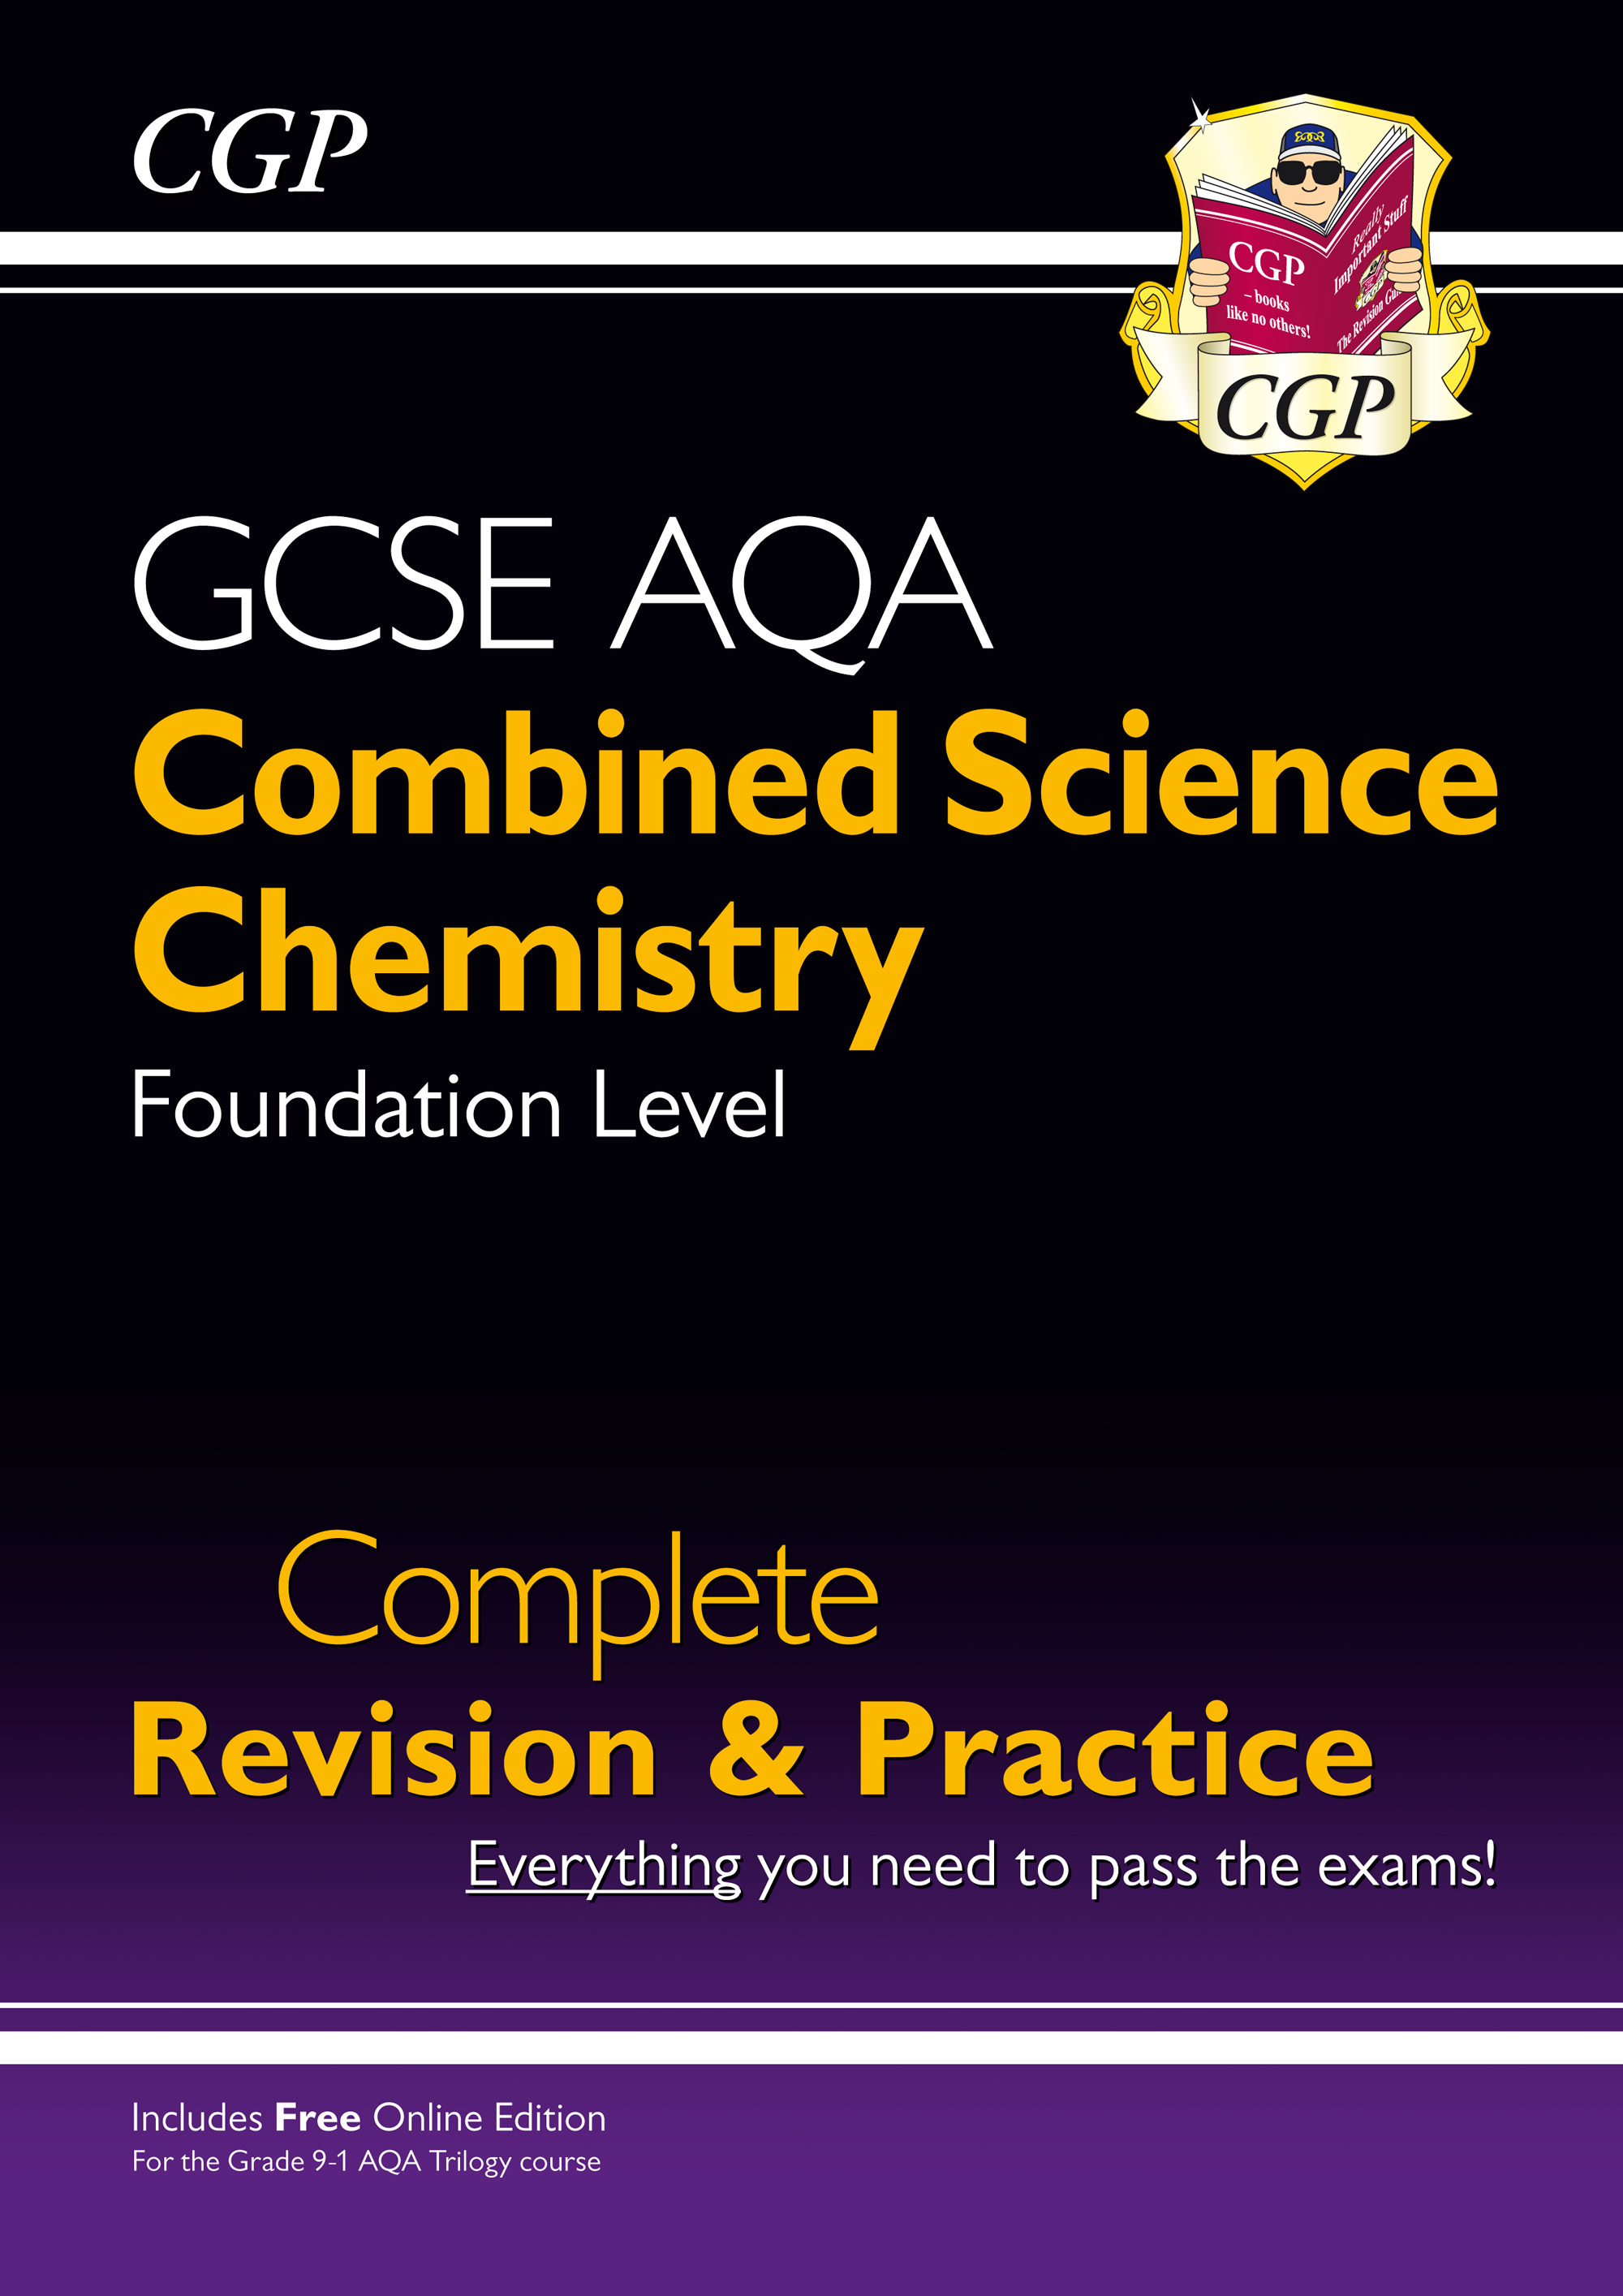 SCCAFS41 - 9-1 GCSE Combined Science: Chemistry AQA Foundation Complete Revision & Practice with Onl